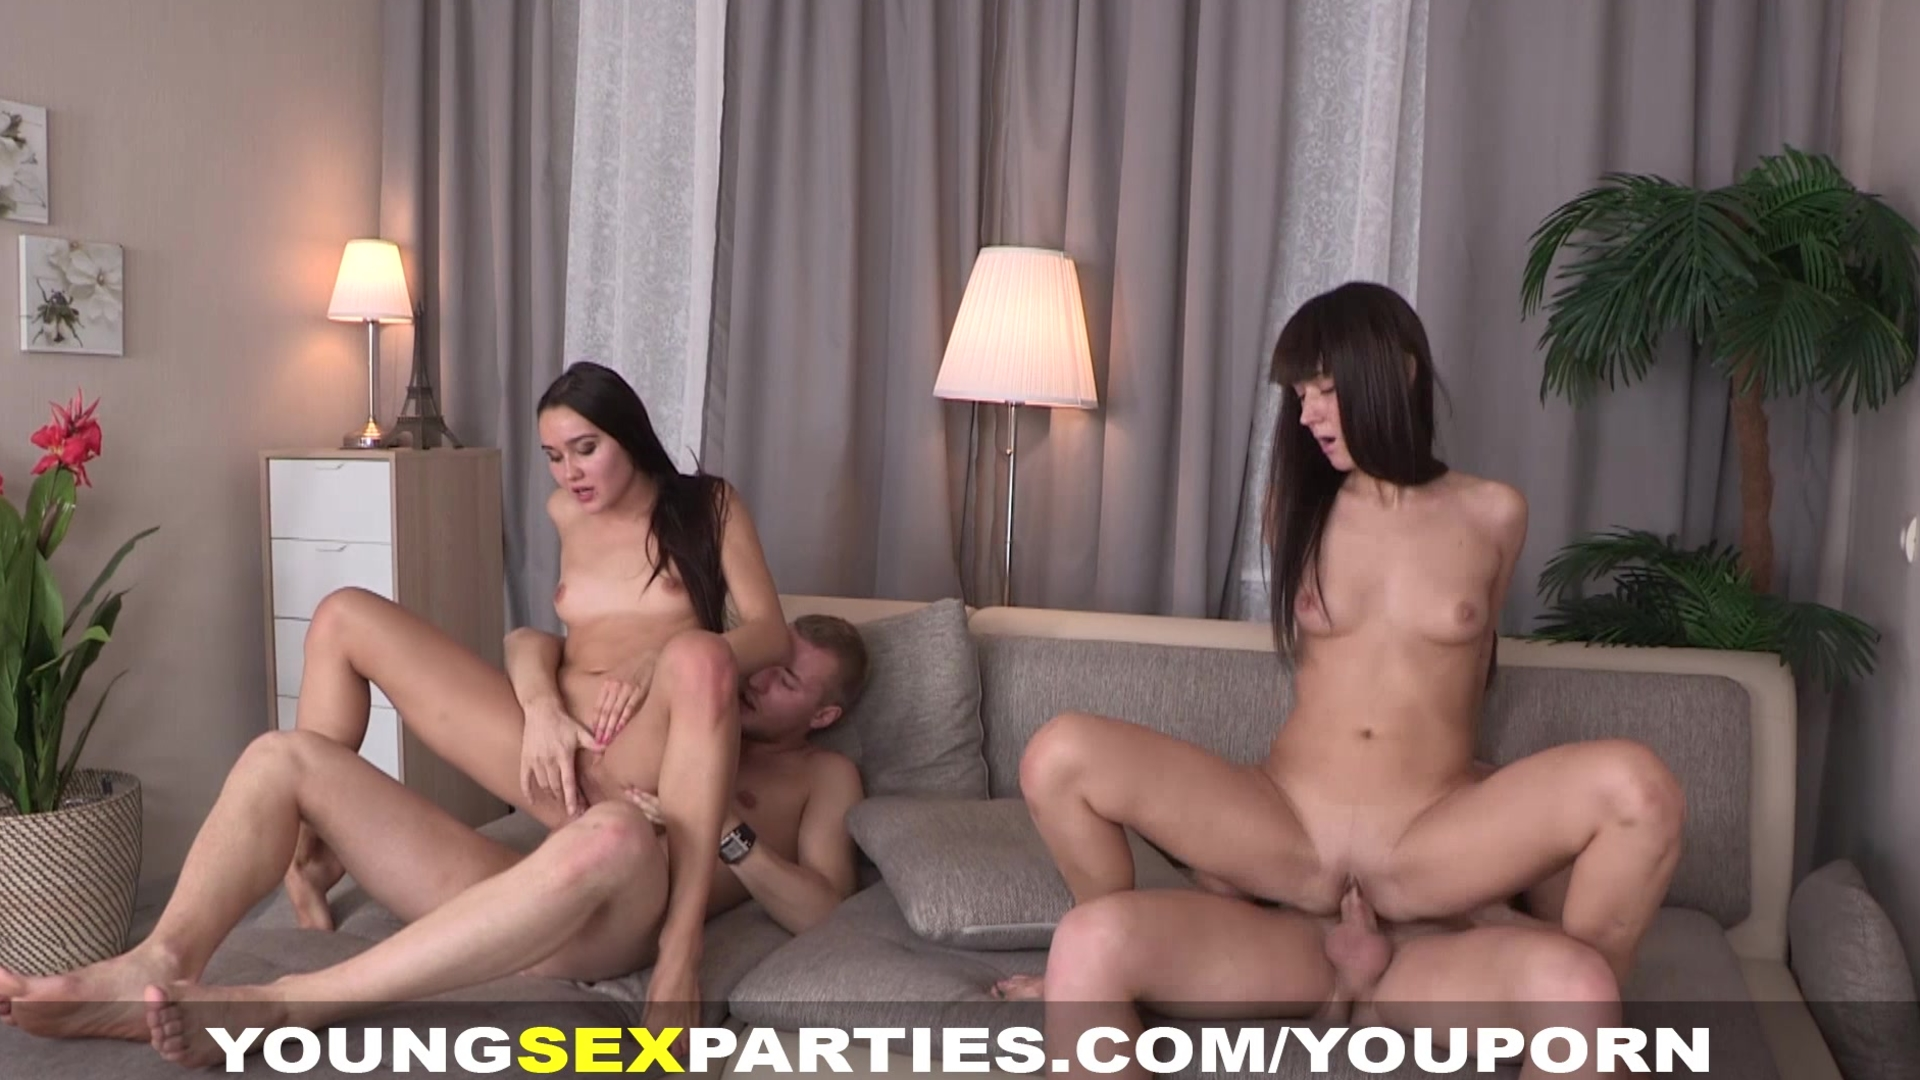 Young Sex Parties - Foursome p